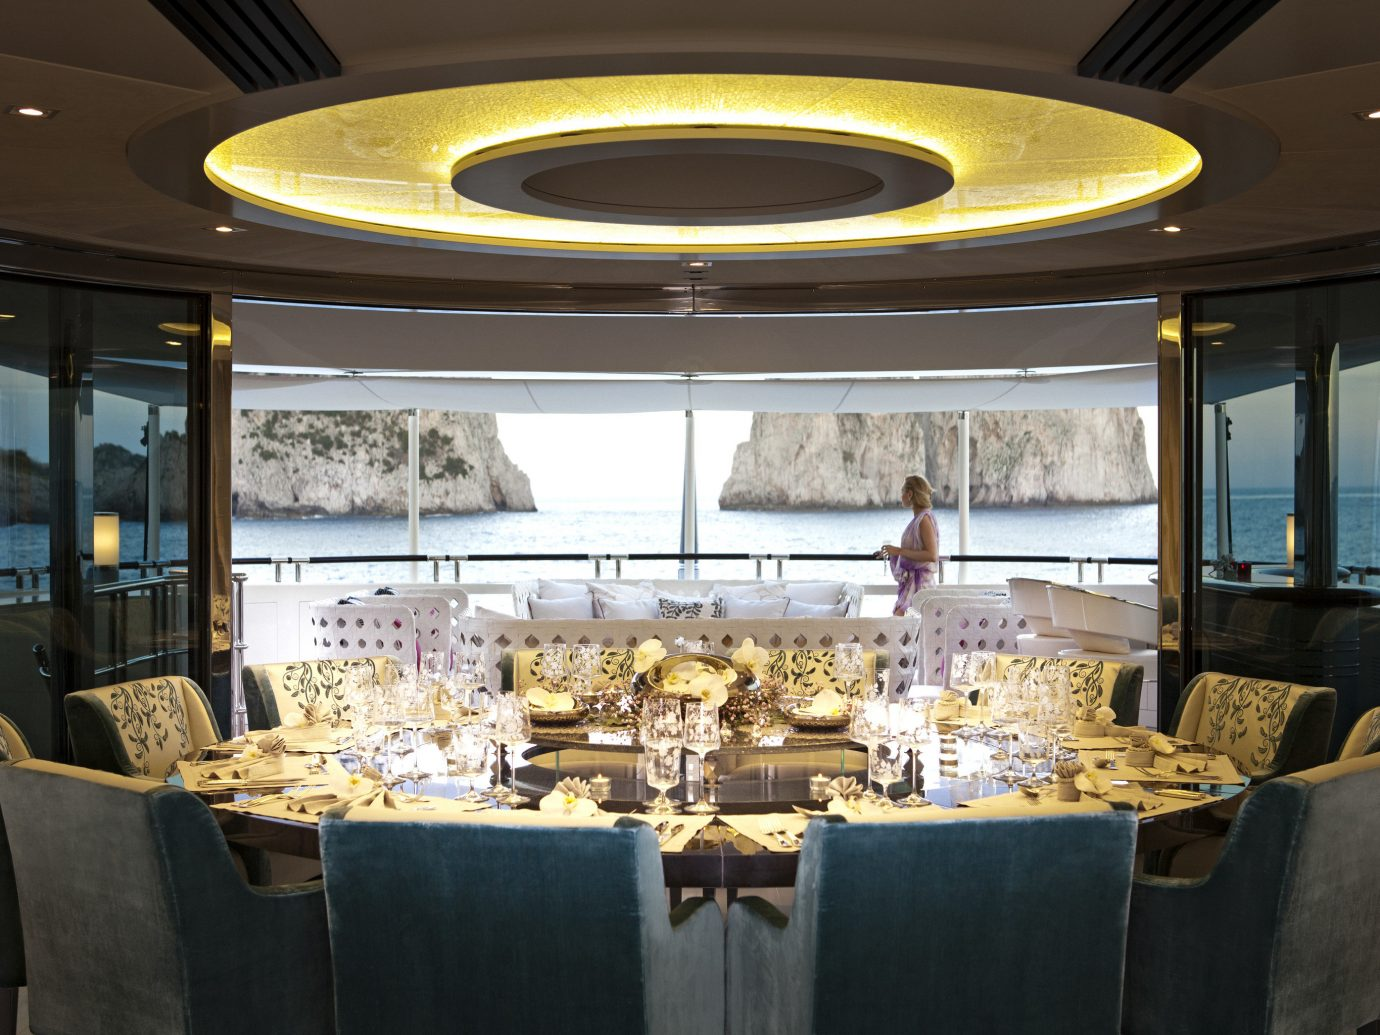 Luxury Travel Trip Ideas indoor Boat passenger ship ceiling vehicle window yacht luxury yacht room function hall interior design watercraft meal estate ship restaurant furniture